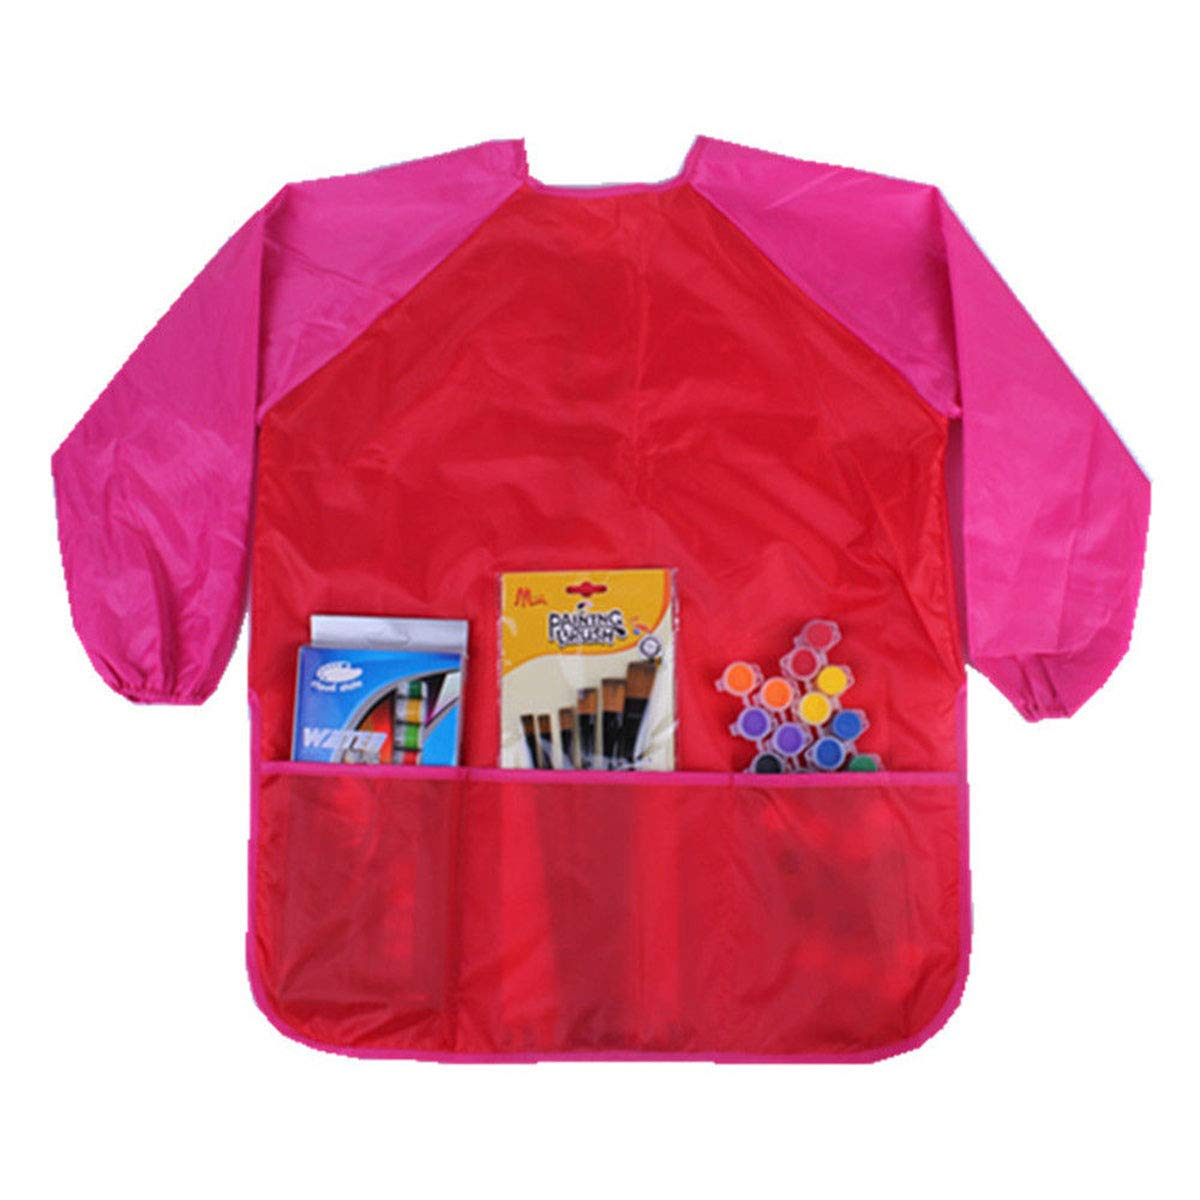 DFSanaShanao Long Sleeve Soft Art Smocks Stain-Resistant Paint Toddler Kids Children Waterproof Apron Saliva Towel Bib Clothes (Red) XIAO